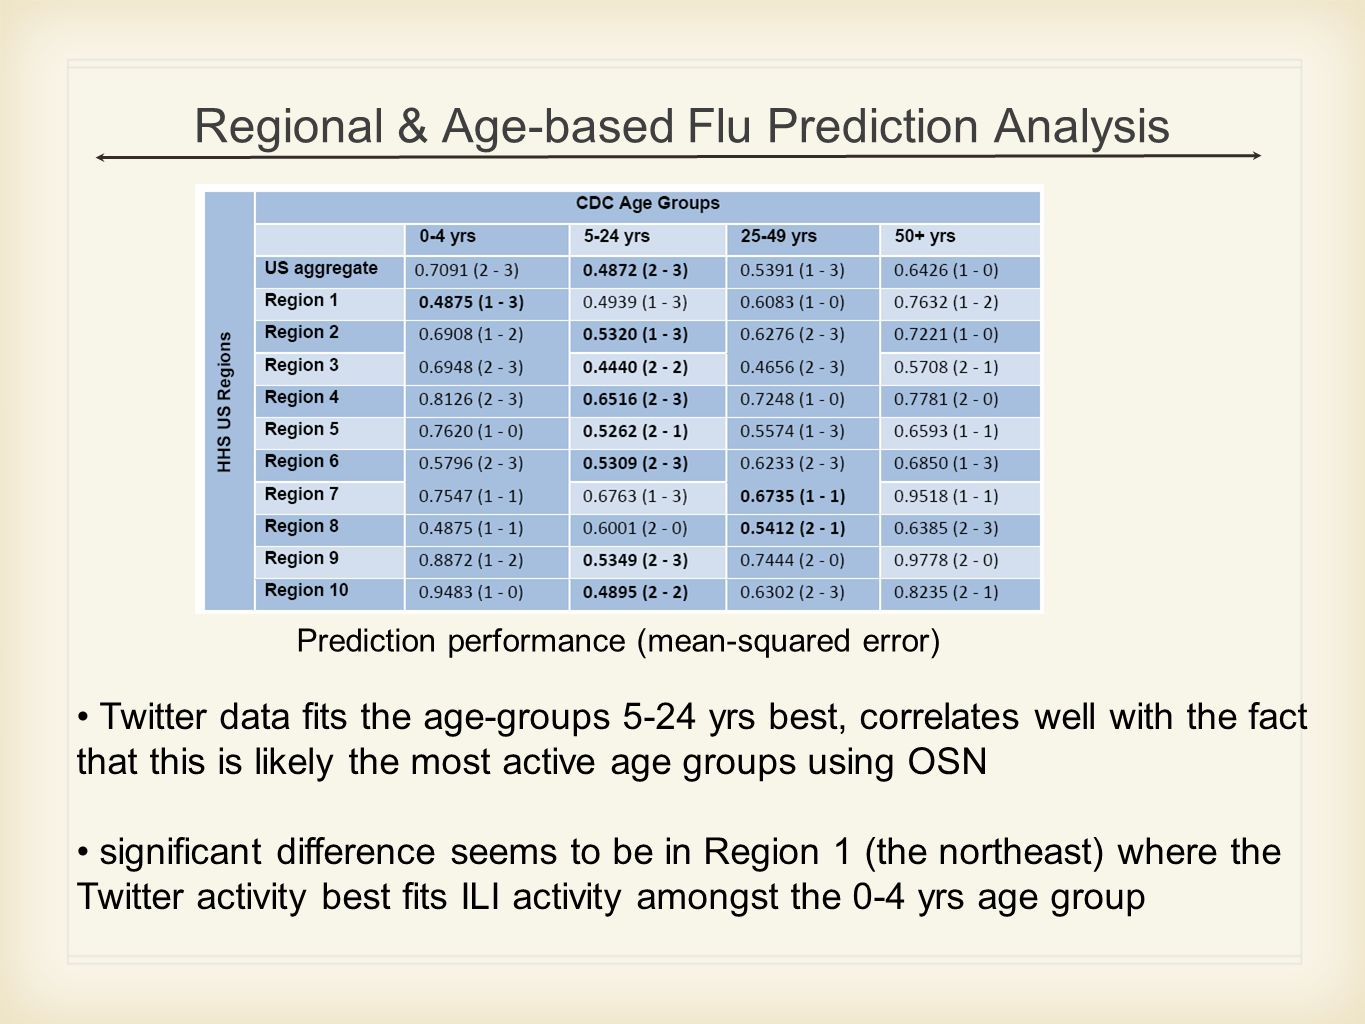 Regional & Age-based Flu Prediction Analysis Prediction performance (mean-squared error) Twitter data fits the age-groups 5-24 yrs best, correlates well with the fact that this is likely the most active age groups using OSN significant difference seems to be in Region 1 (the northeast) where the Twitter activity best fits ILI activity amongst the 0-4 yrs age group